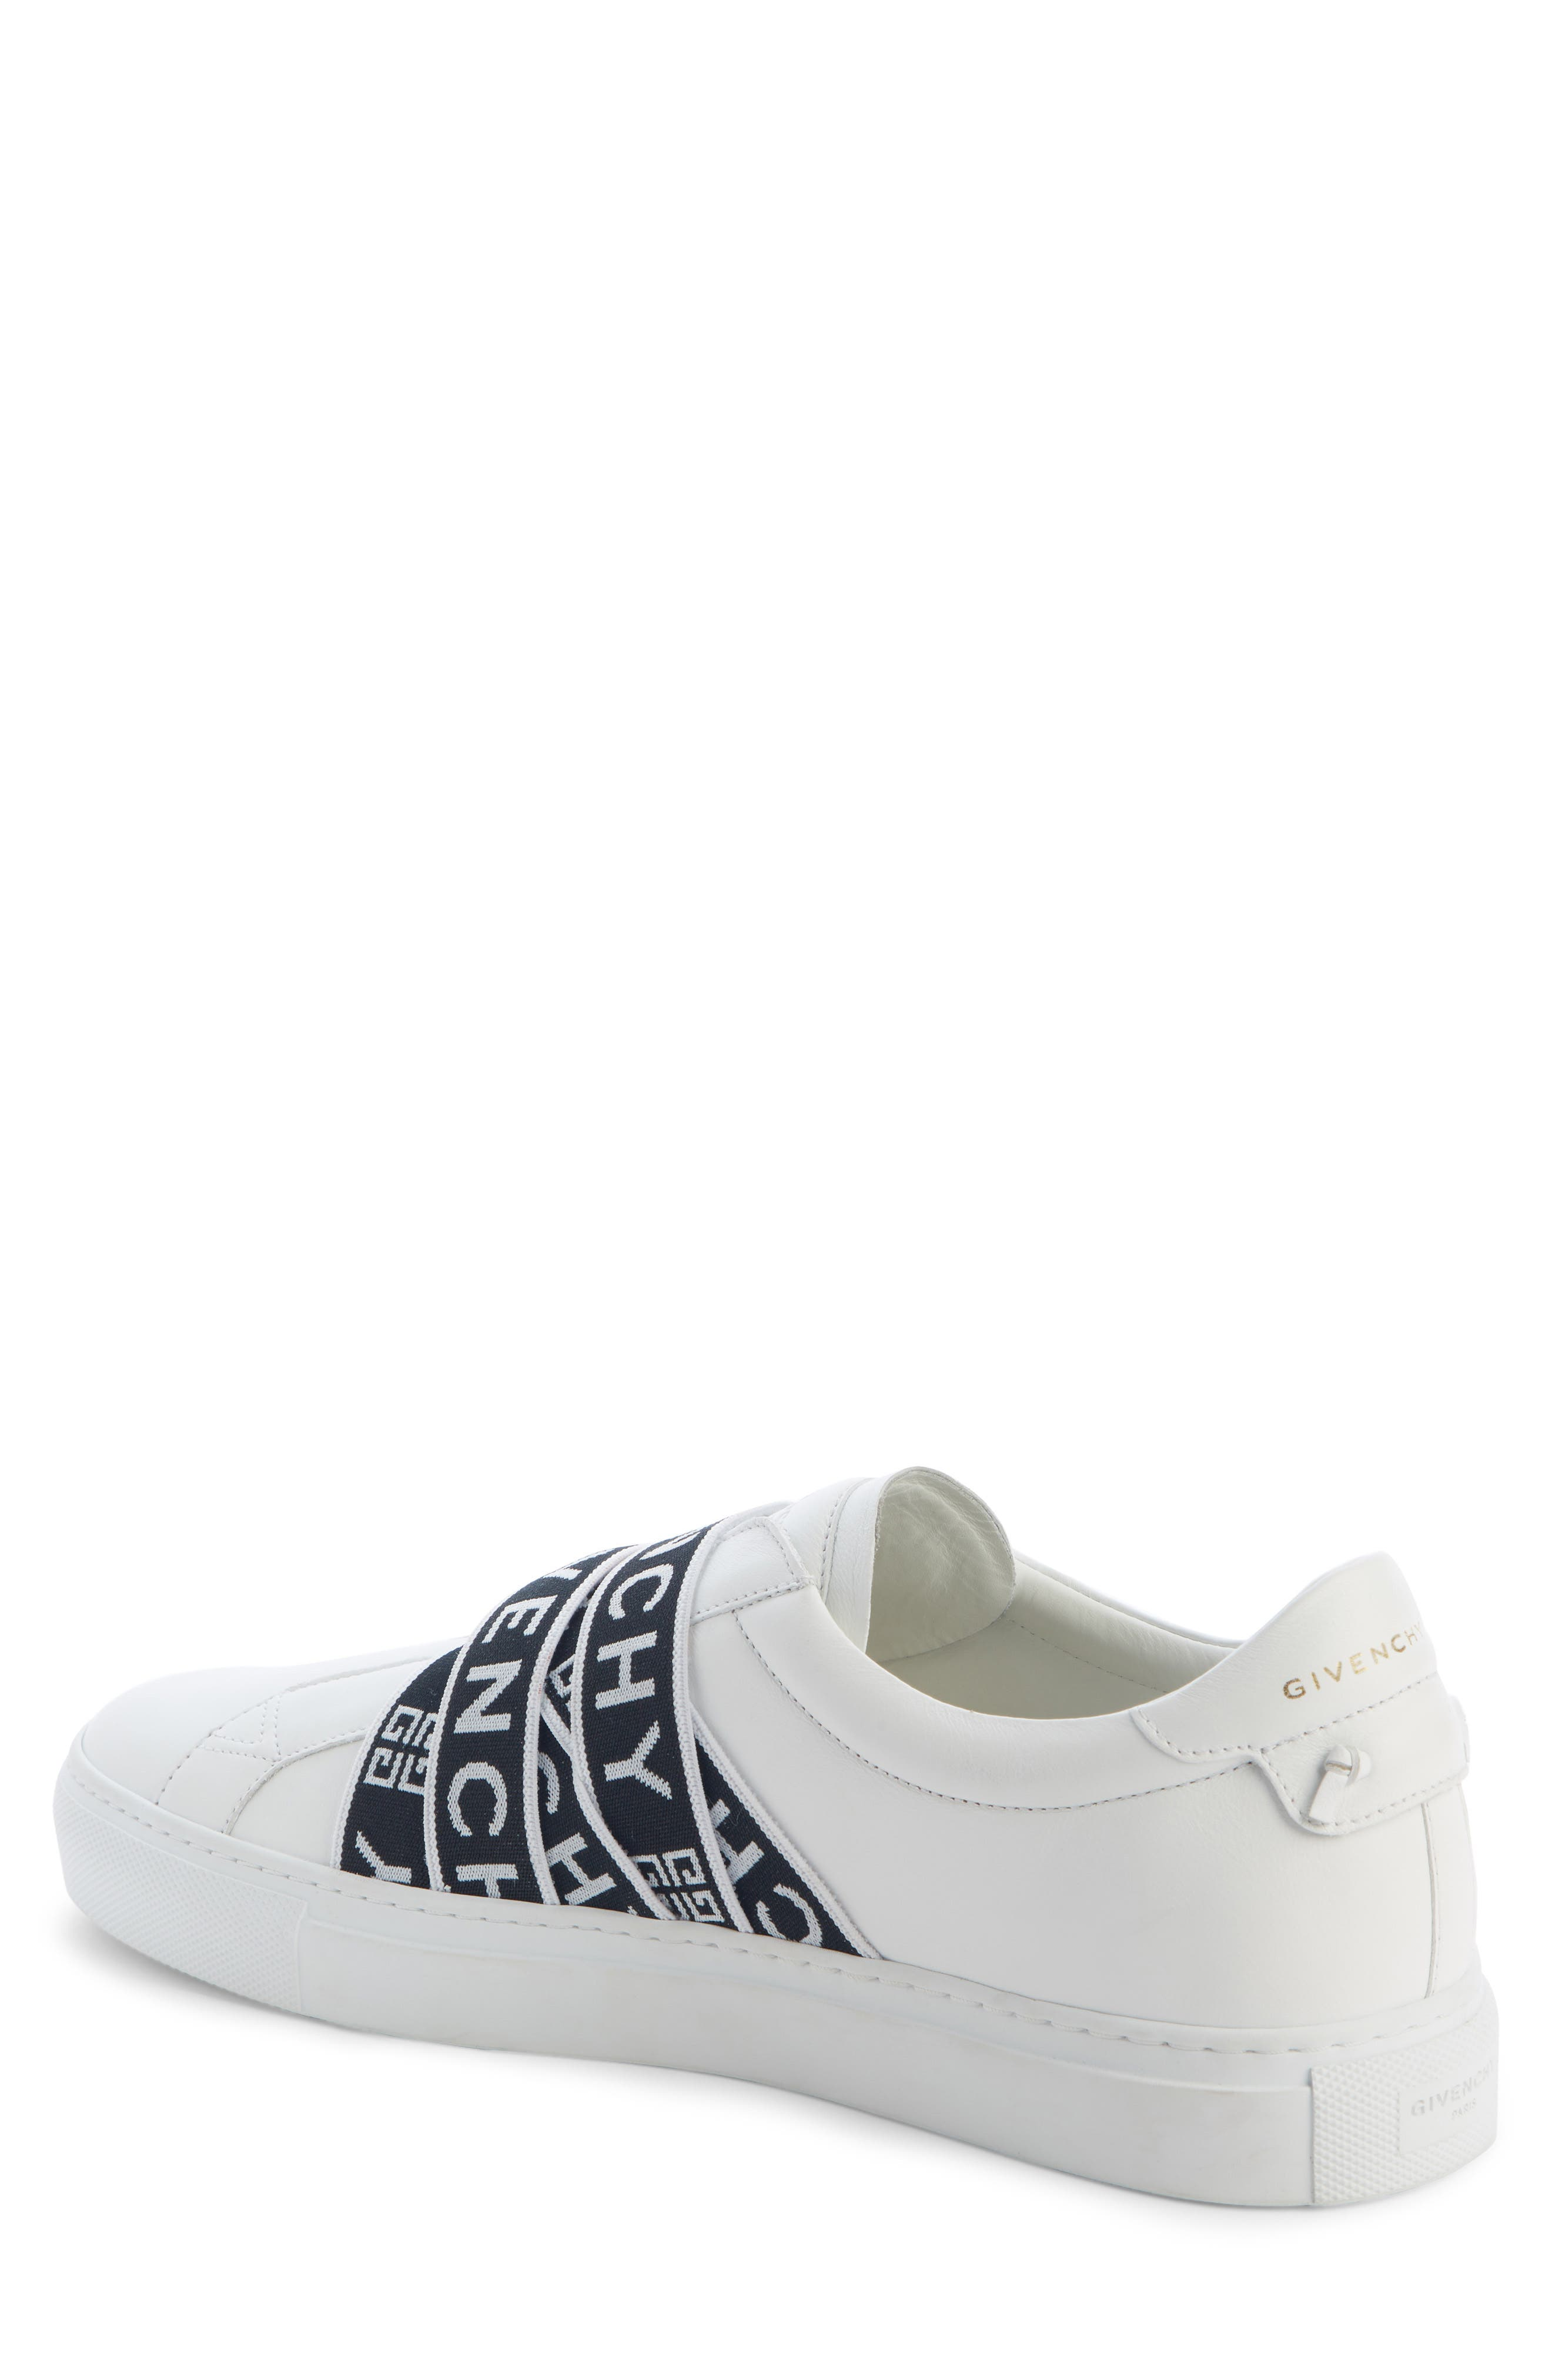 Urban Street Slip-On,                             Alternate thumbnail 2, color,                             WHITE/ BLACK